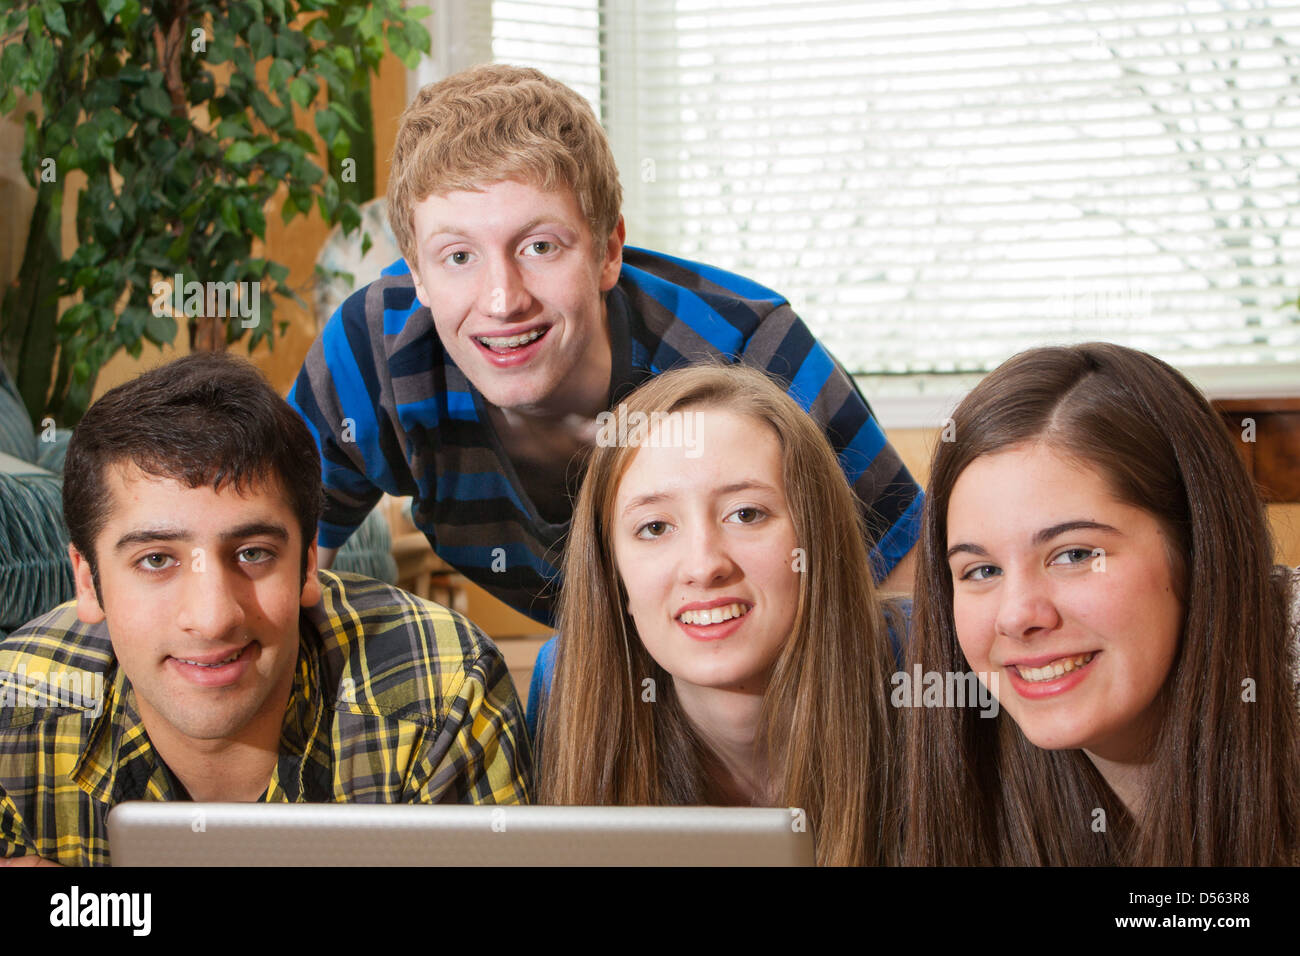 A diverse group of teenagers gathered around a laptop in a home setting looking at the camera - Stock Image